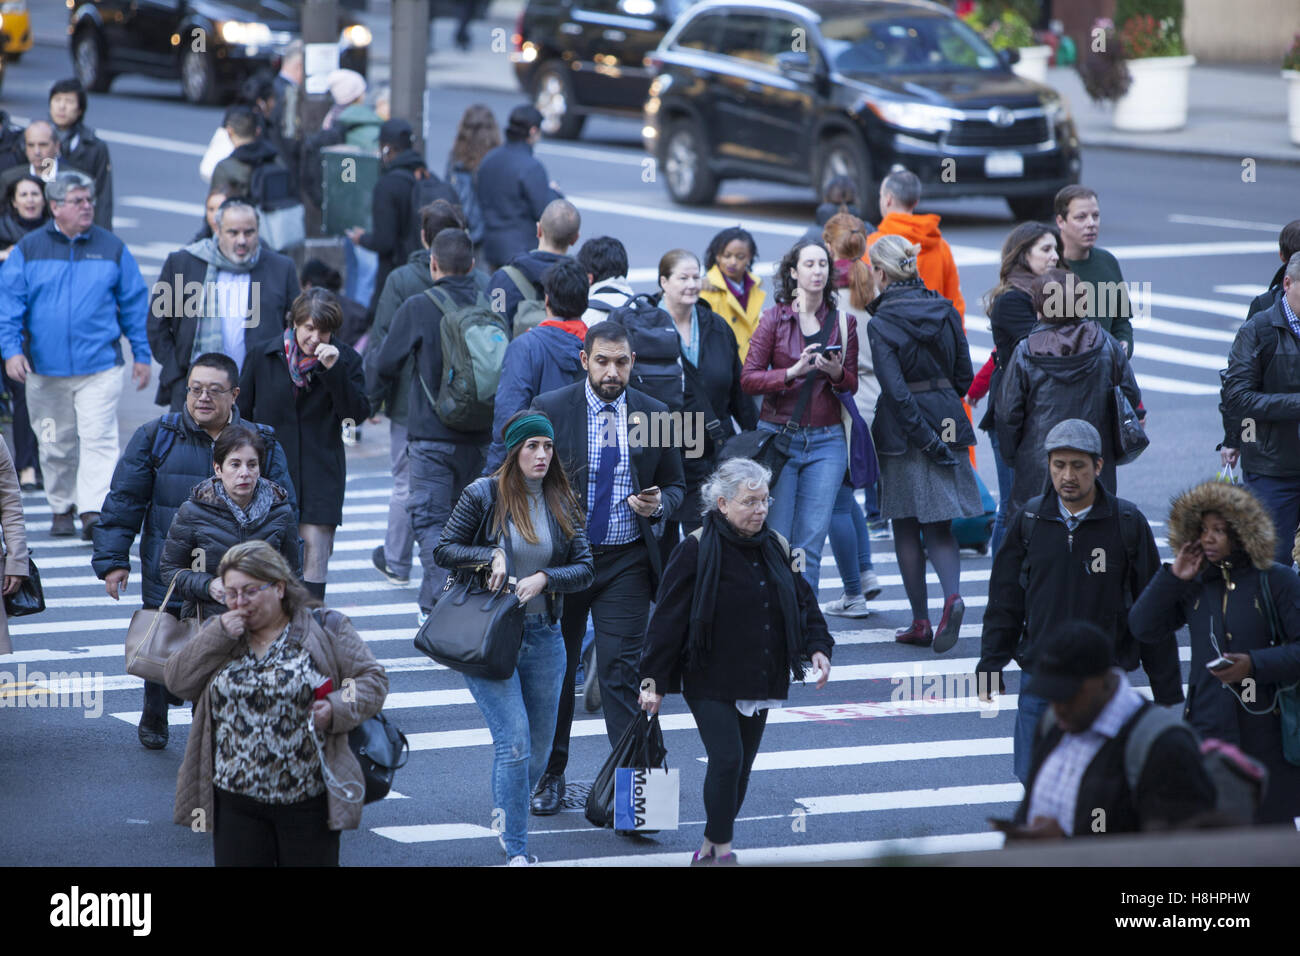 The crosswalks at 42nd Street and 5th Avenue are always clogged with pedestrians going here and there. NYC. - Stock Image